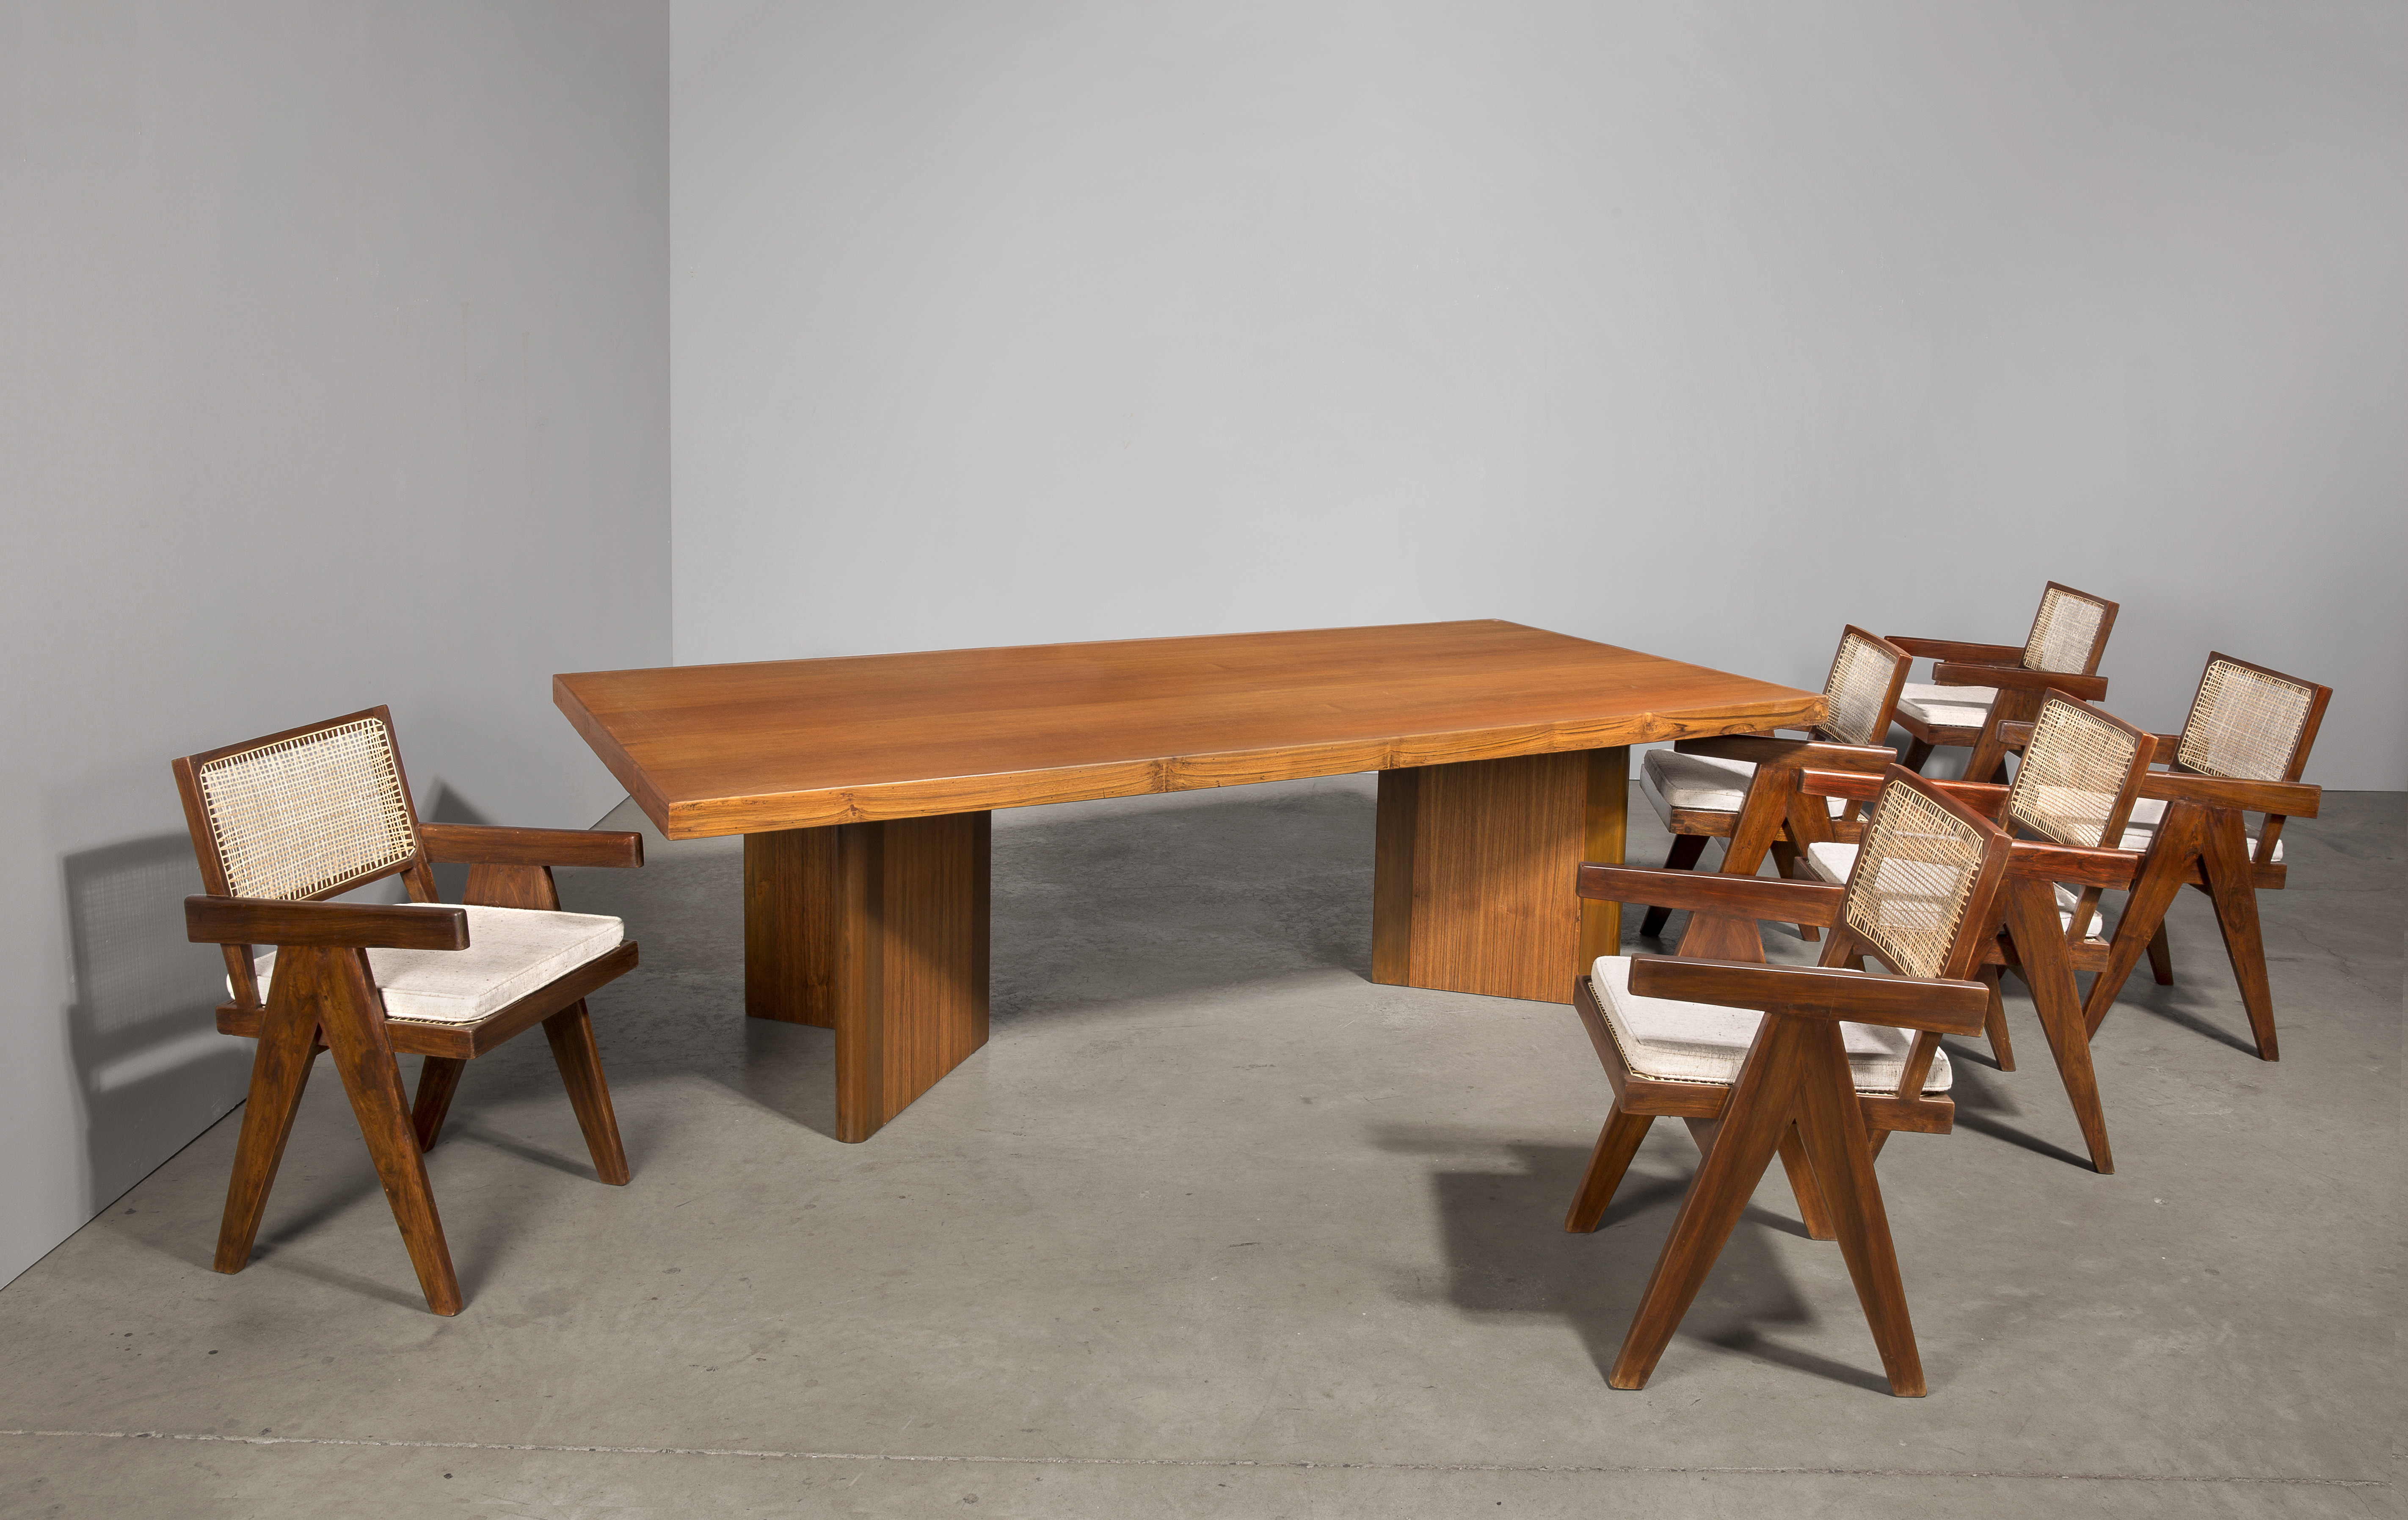 Table and chairs by Pierre Jeanneret